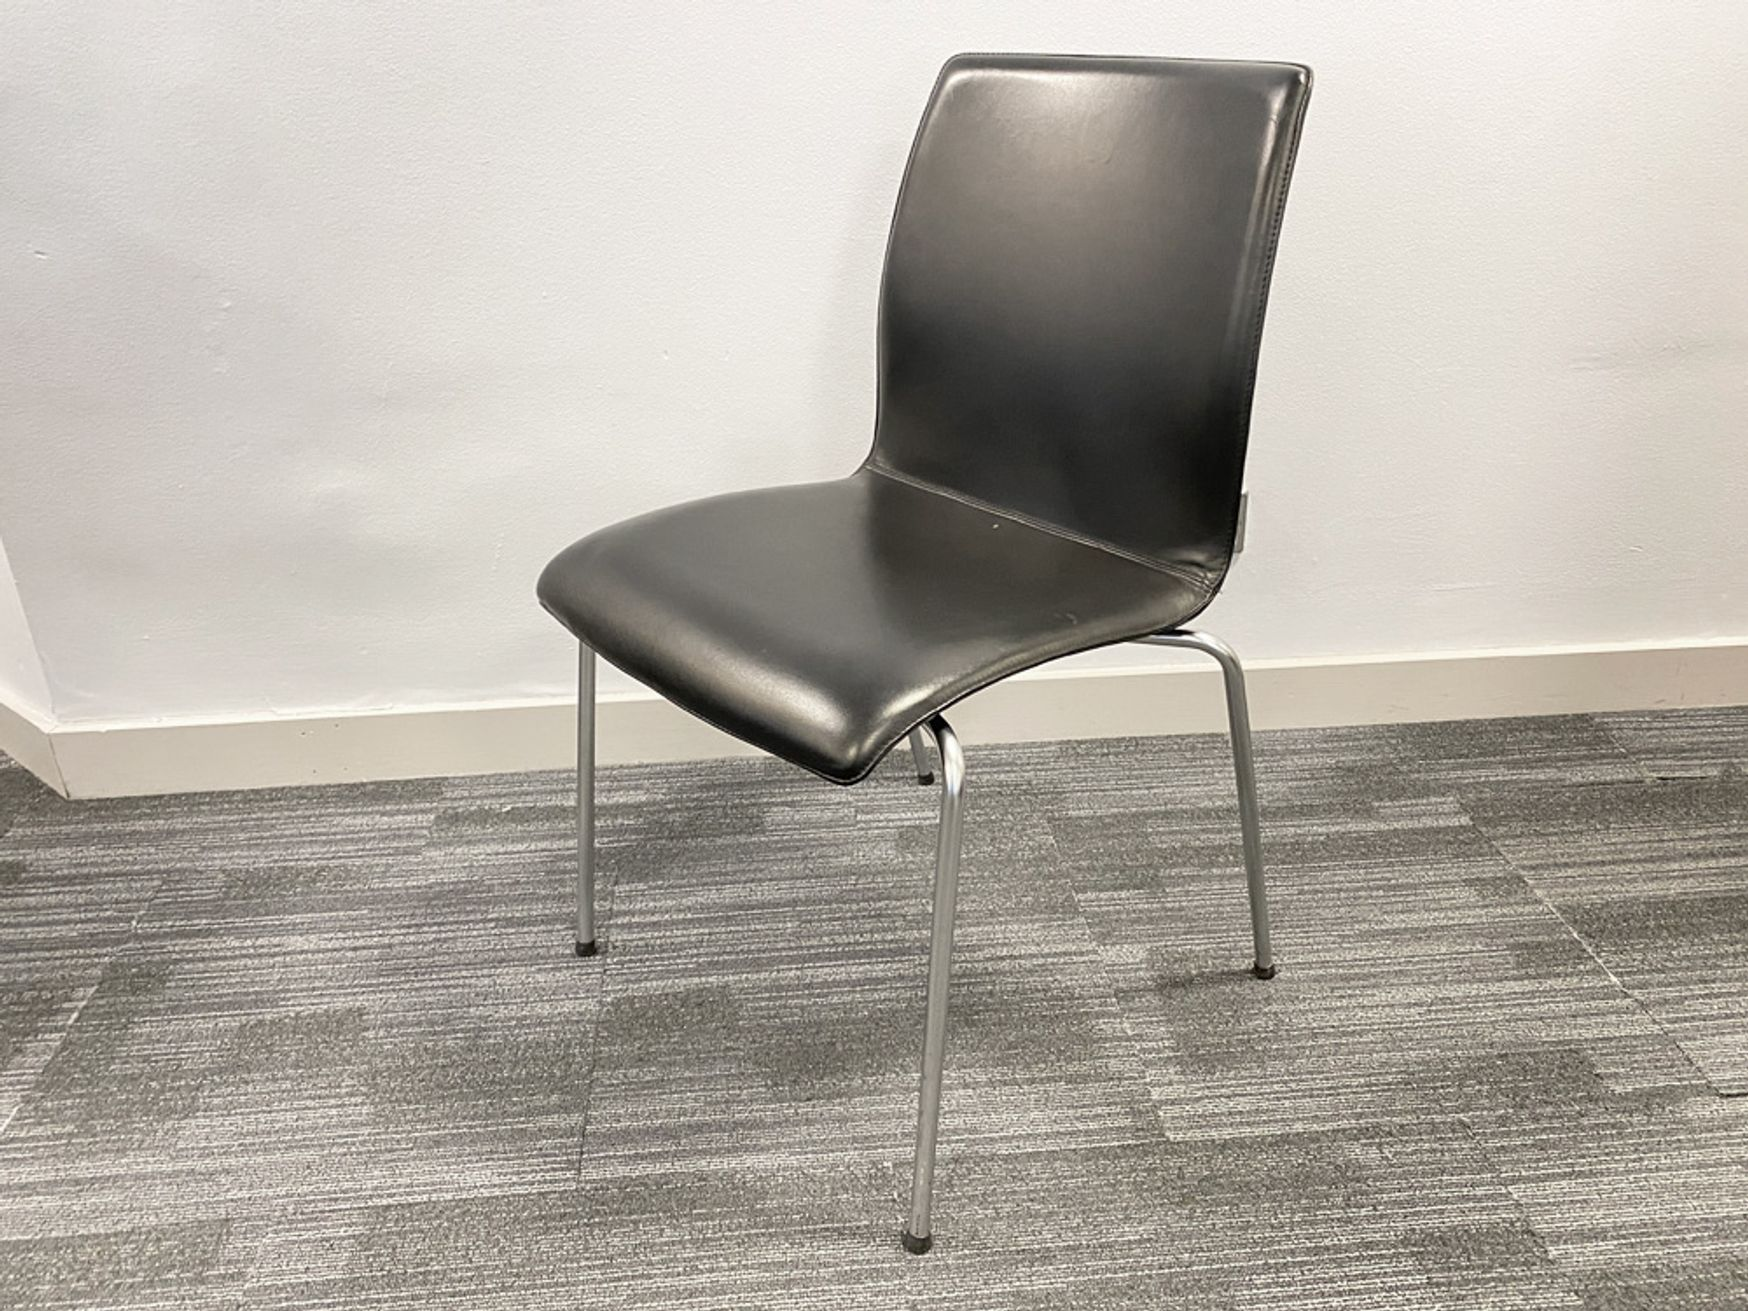 Used black leather stacking chairs with chrome legs